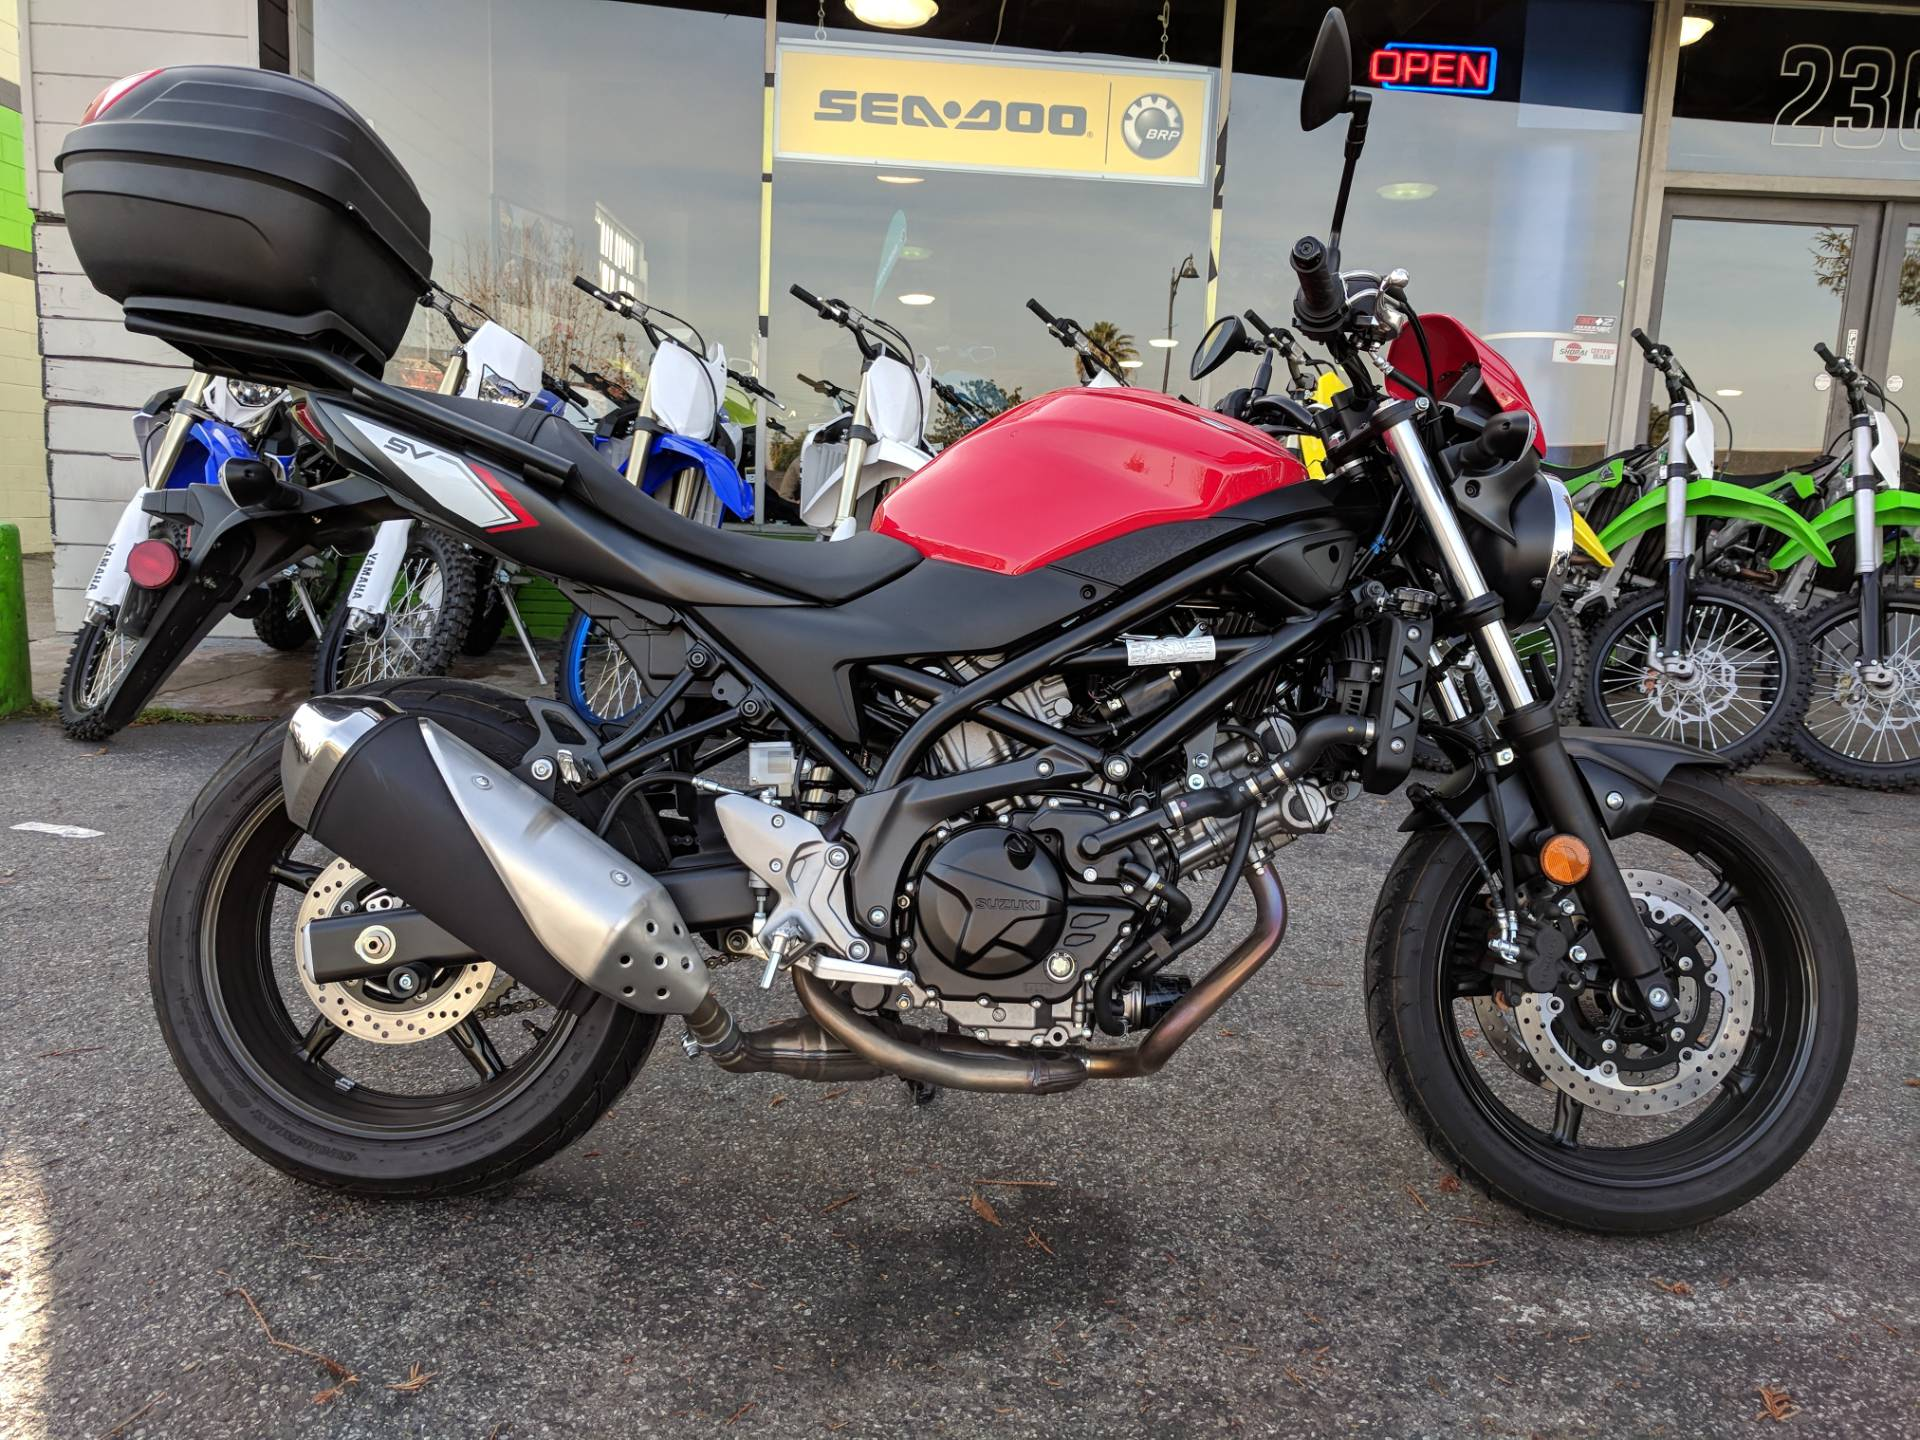 2017 Suzuki SV650 for sale 106213